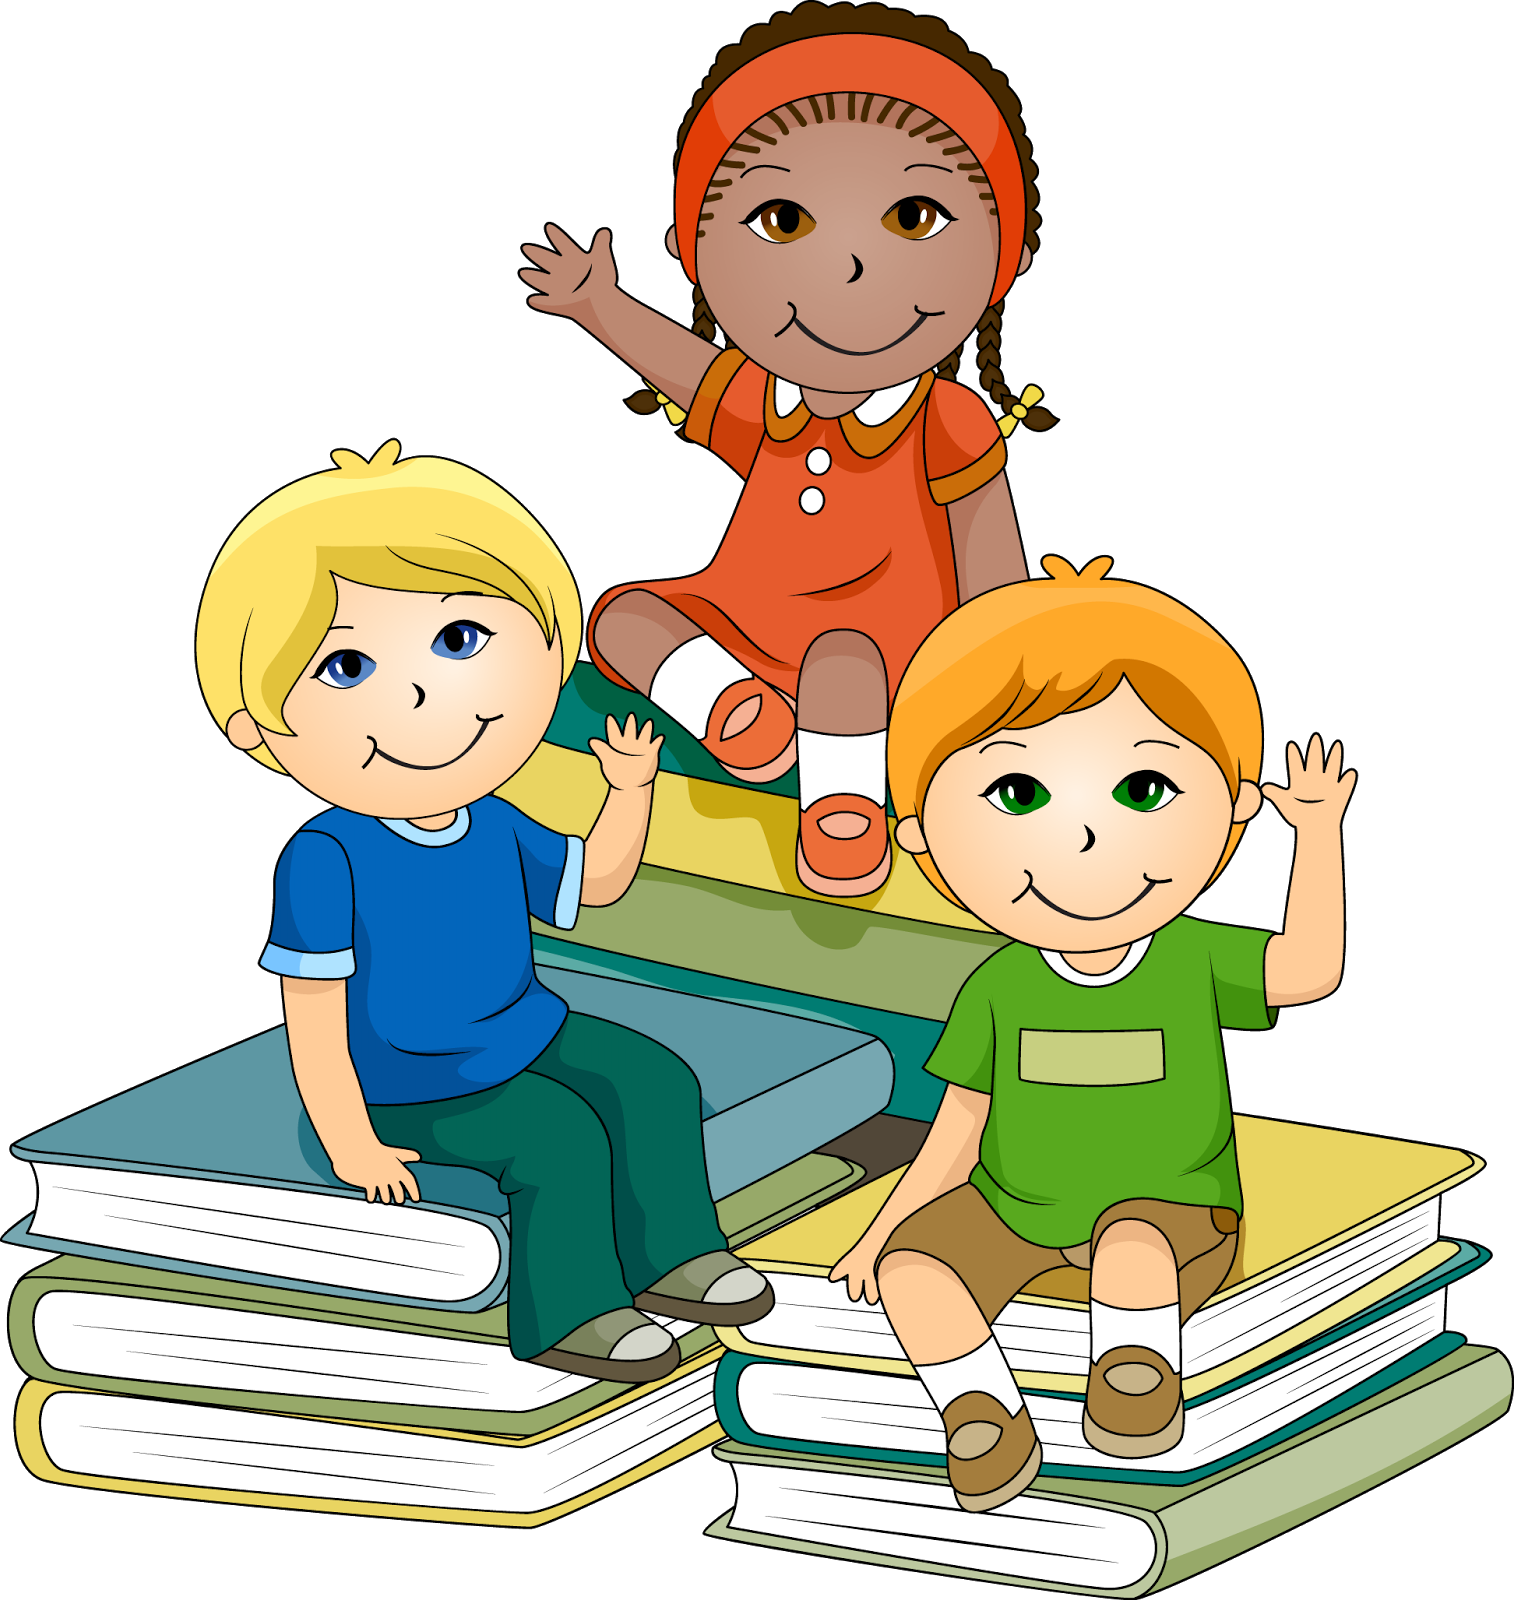 Cartoon child doing school work png. Kids learning clipart image